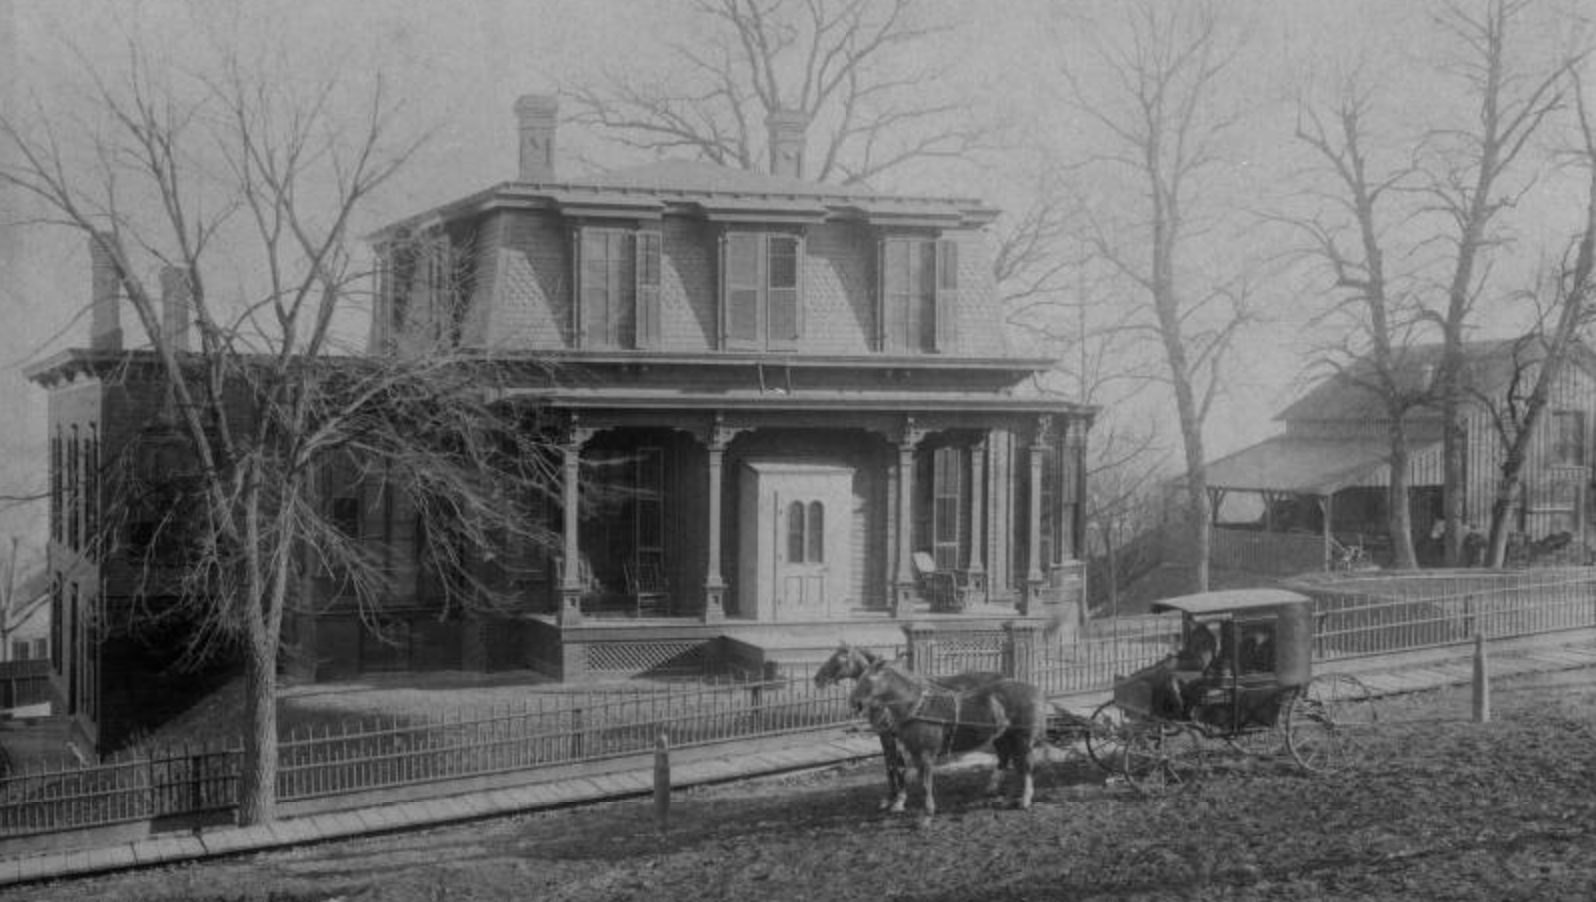 Thomas Kimball, Sr. Mansion, 1225 Park Wilde, Omaha, Nebraska